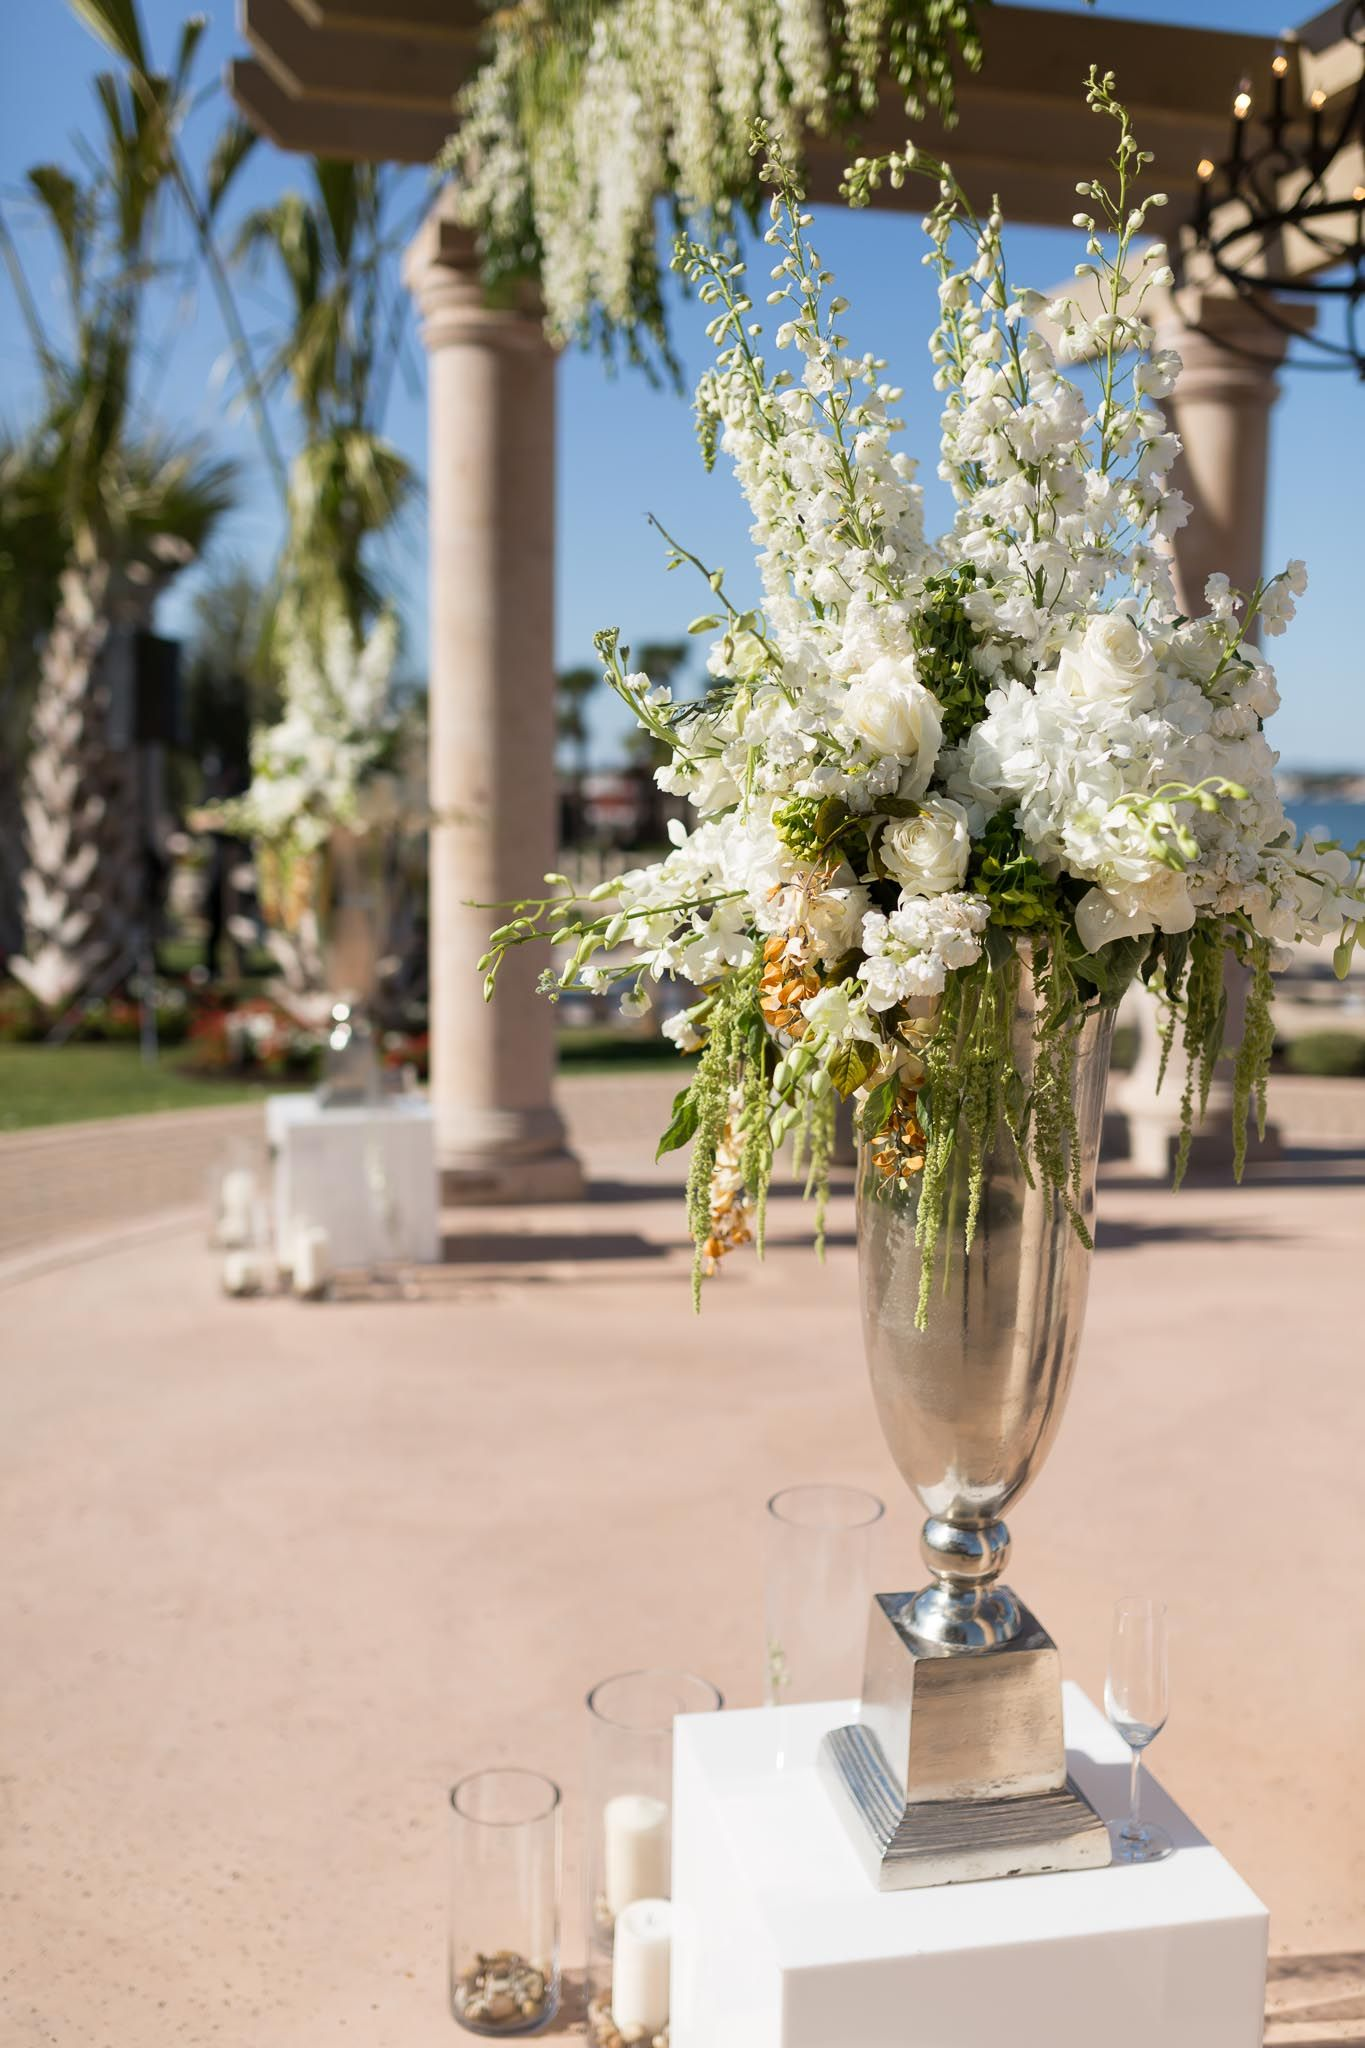 Up Close View Of The White Floral Arrangement Used For Ceremony Space Under The Pergola White Floral Arrangements Floral Arrangements Floral Wedding